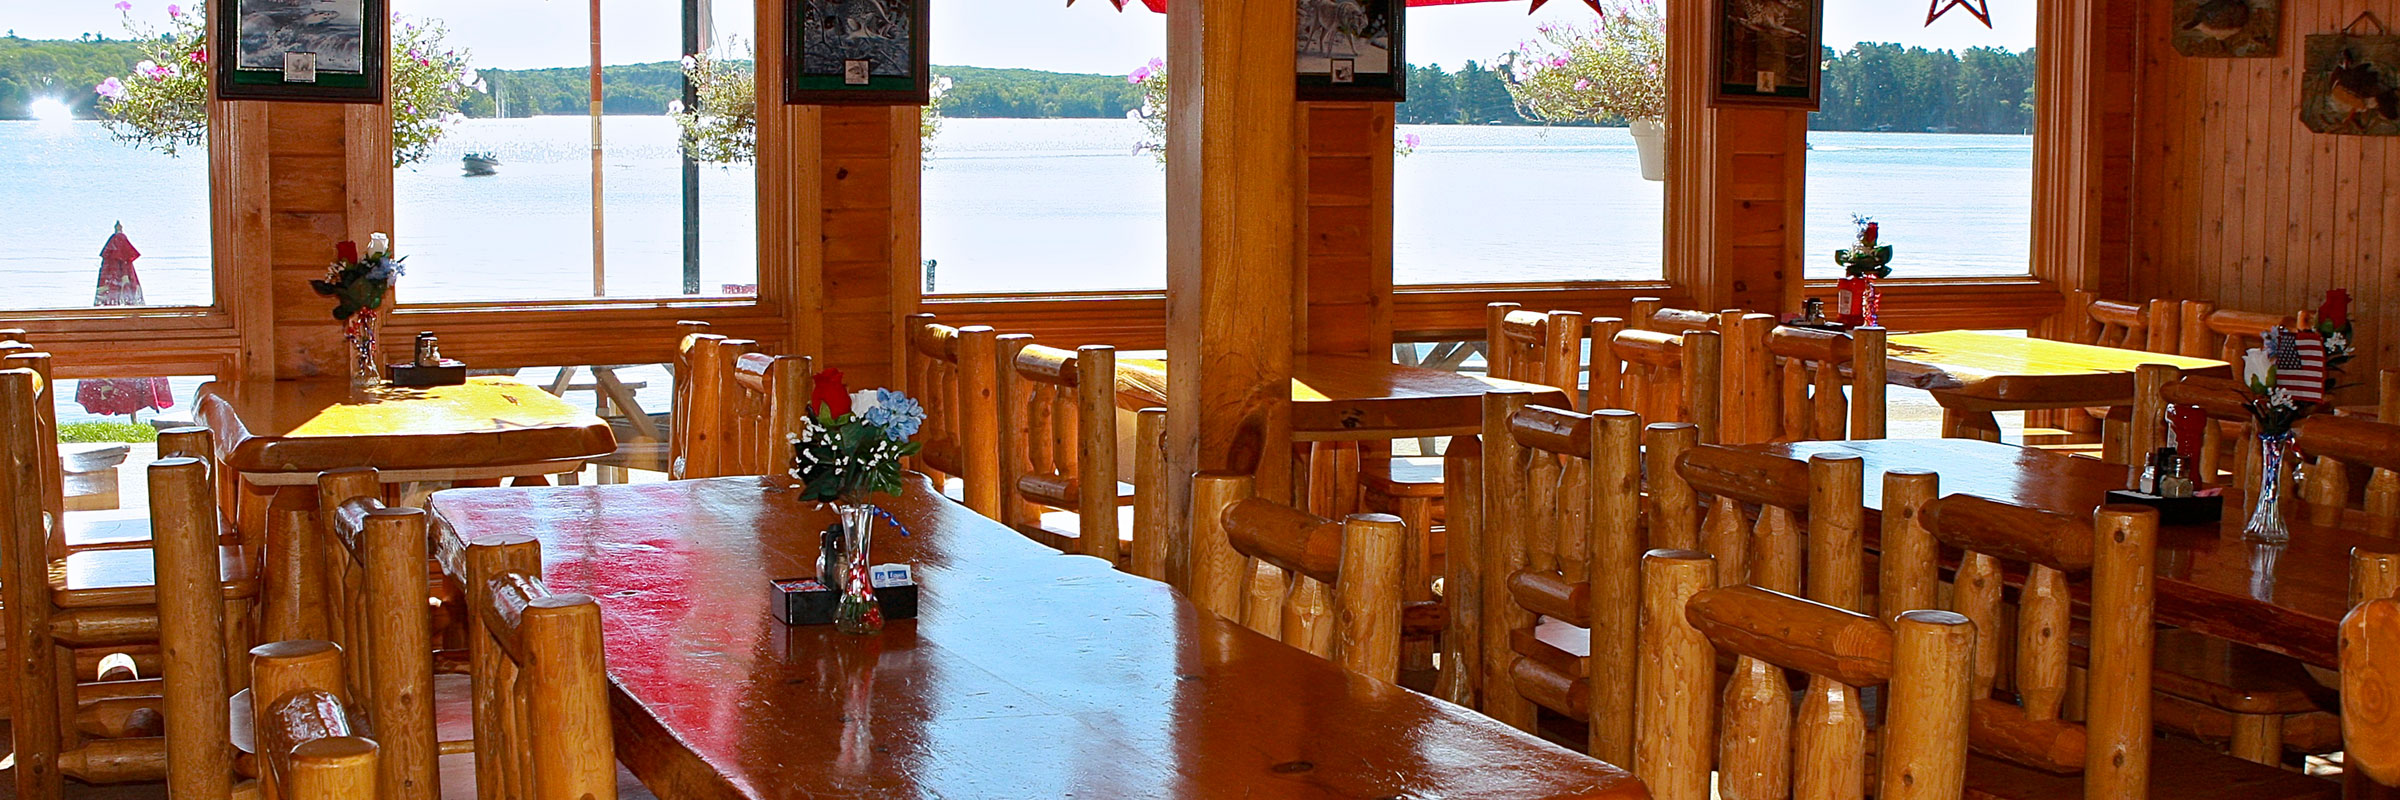 Chief lake lodge restaurant view